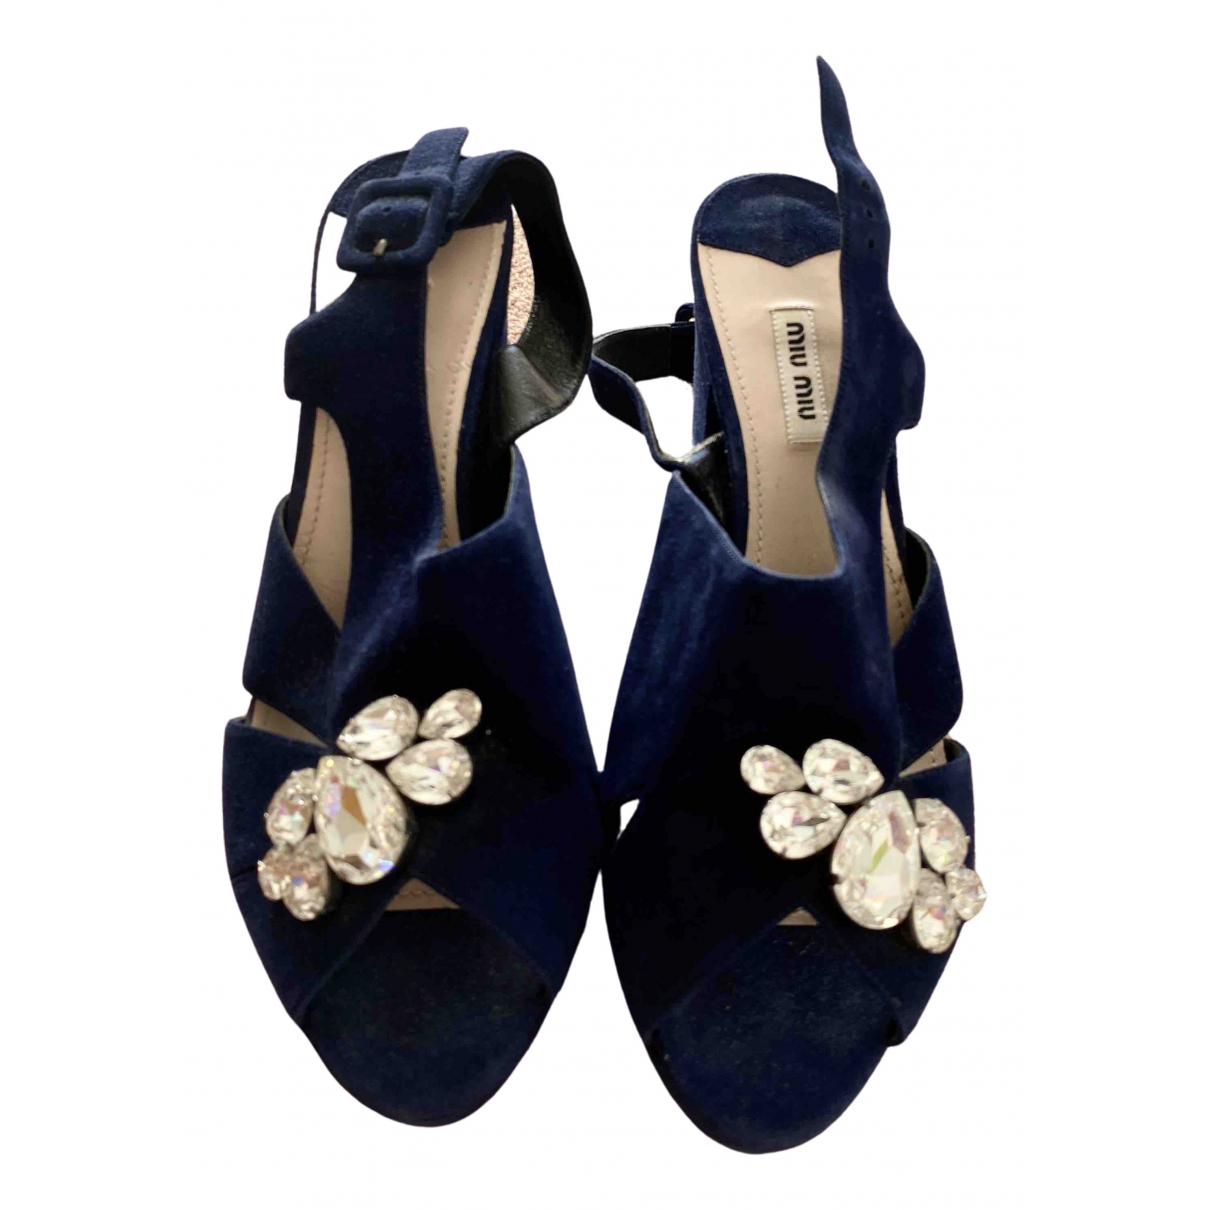 Miu Miu \N Pumps in  Blau Veloursleder